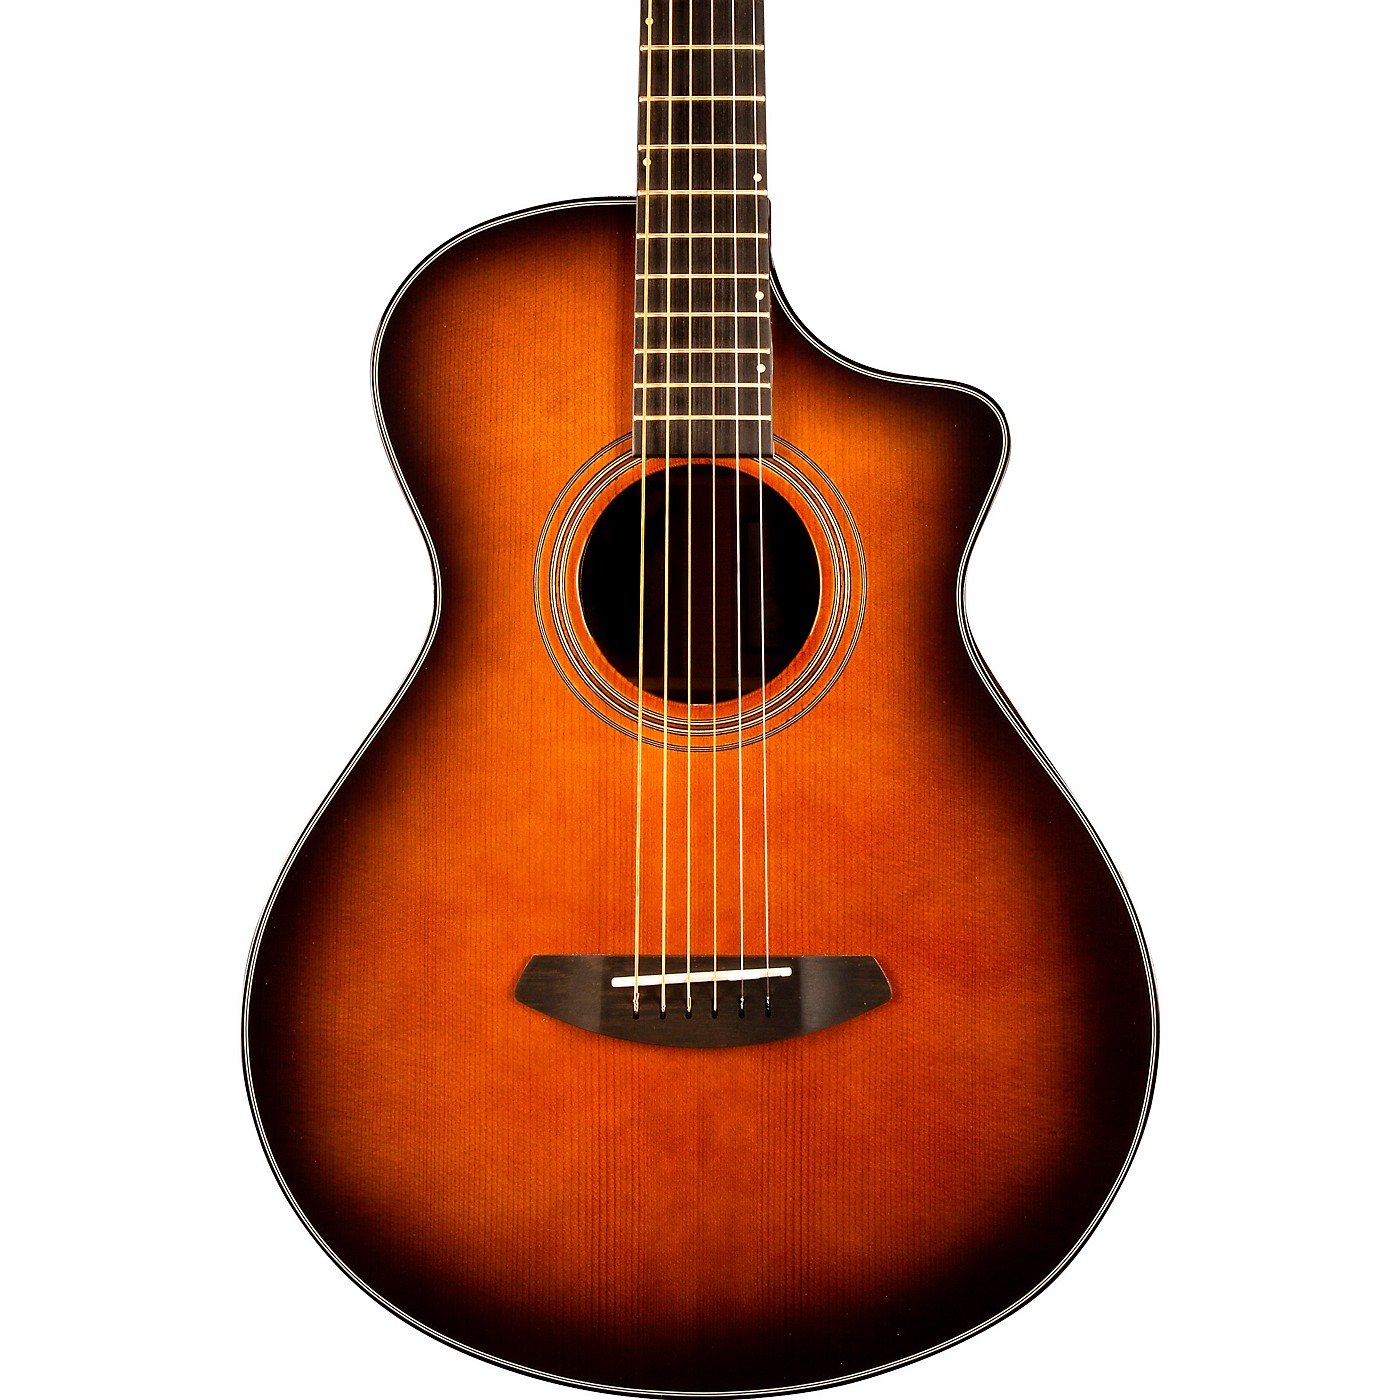 Breedlove Organic Collection Performer Concertina Cutaway CE Acoustic-Electric Guitar thumbnail